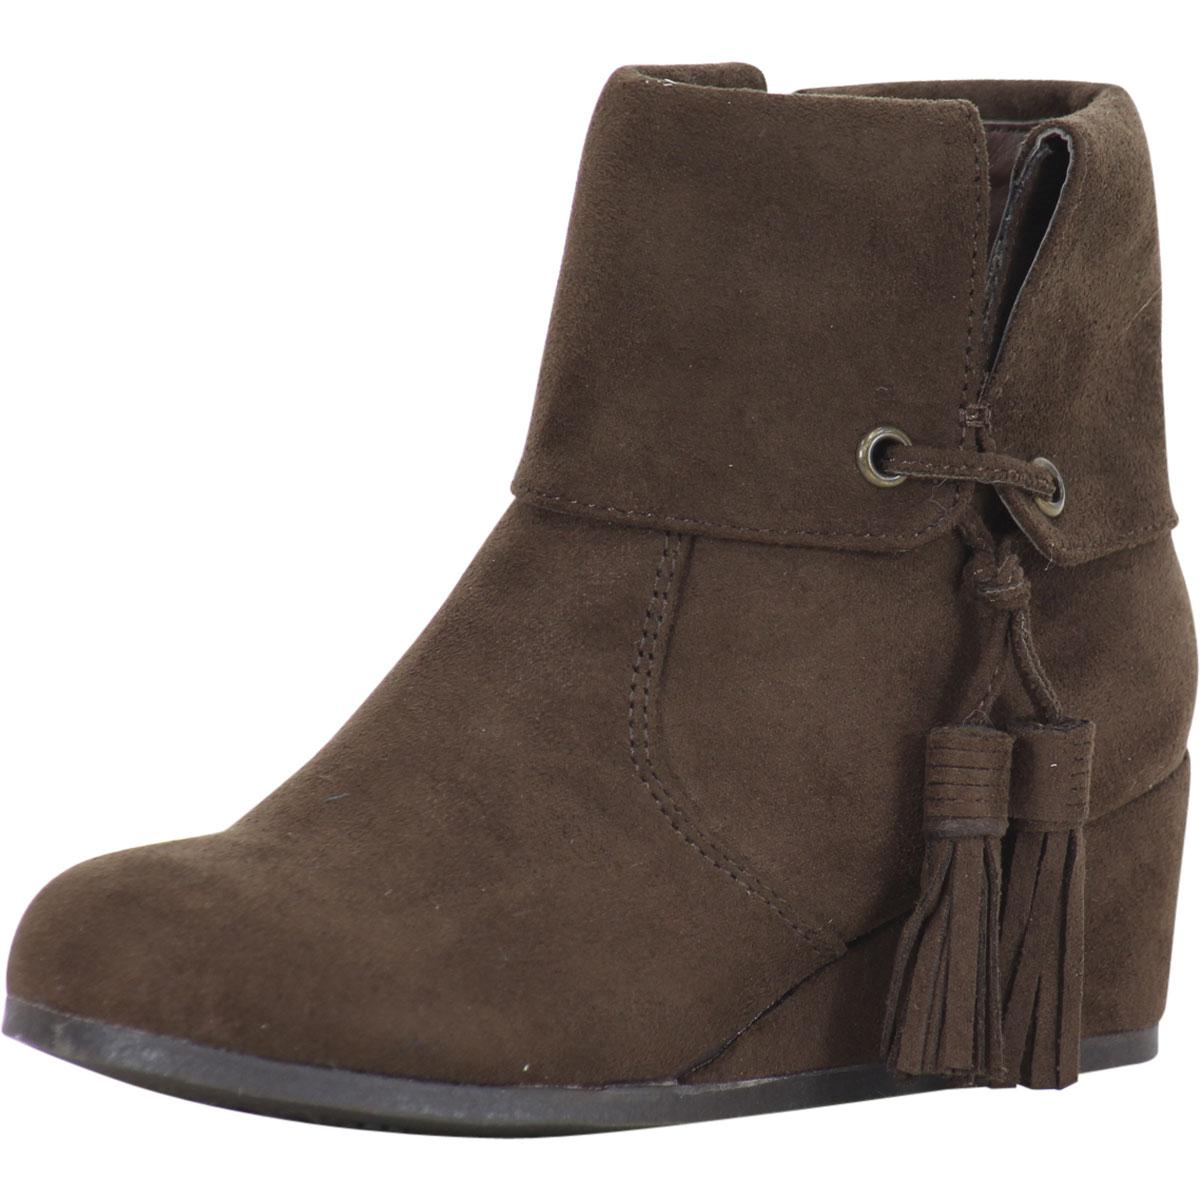 Image of Sugar Little/Big Girl's BonBon Wedge Heel Ankle Boots Shoes - Chocolate - 11 M US Little Kid